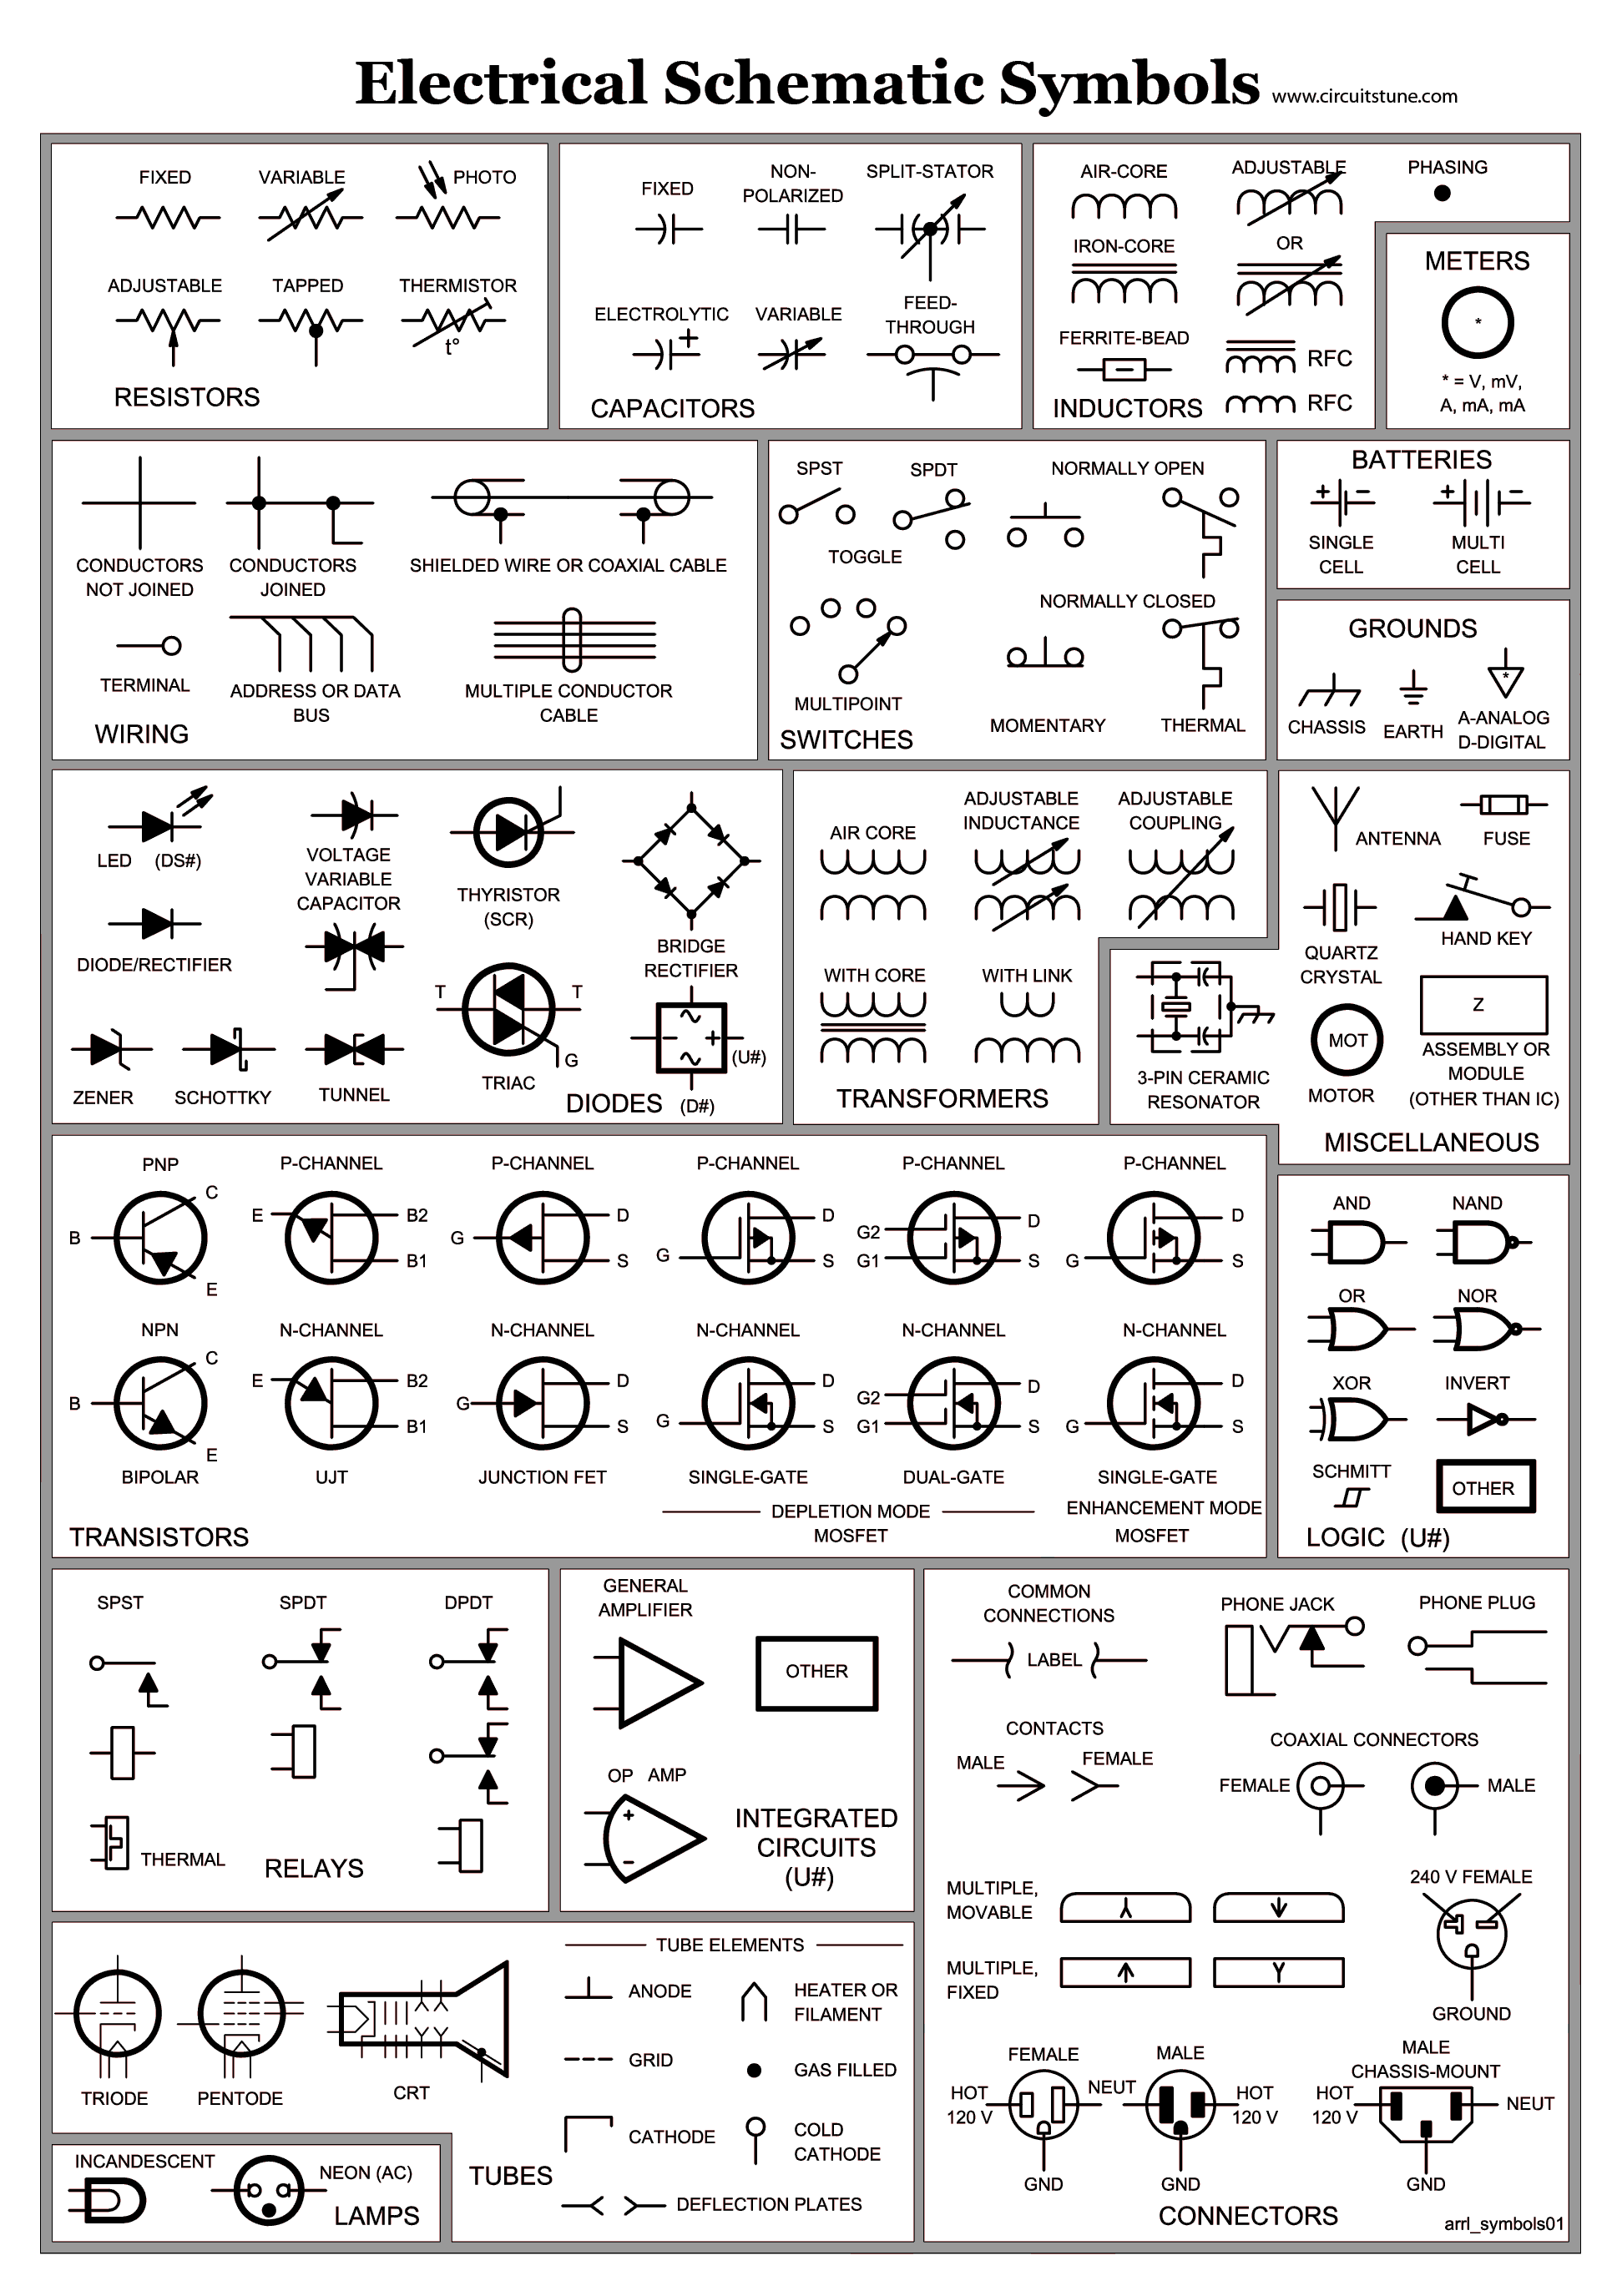 electrical schematic symbols wire diagram symbols automotive wiring rh pinterest com electrical wiring symbols and meanings pdf electrical wiring symbols chart